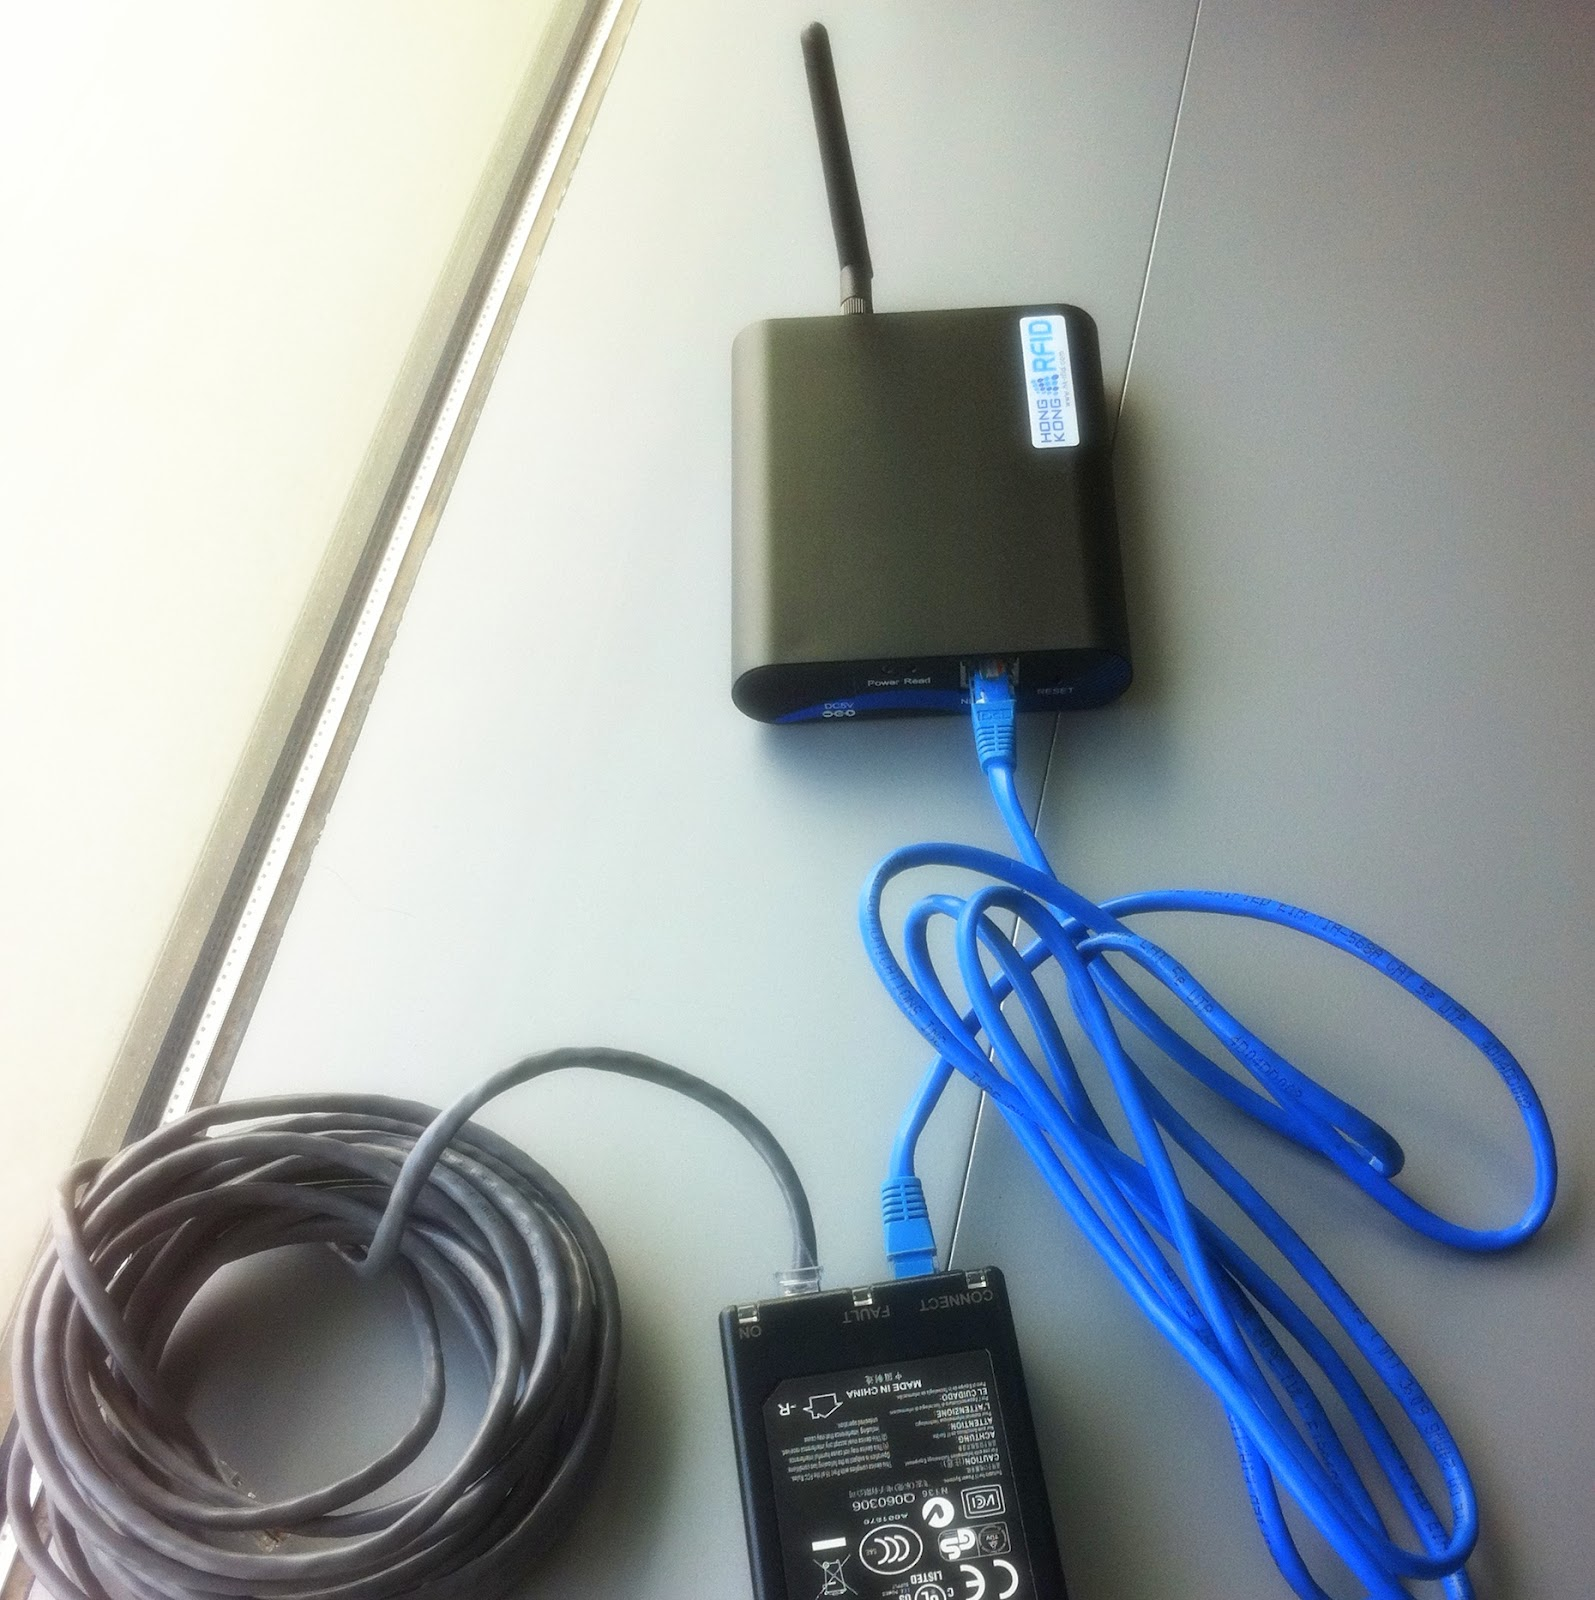 Rfid Bloggyn Tips Power Over Ethernet Poe Is Getting Popular A Technology That Allows Devices Such Uses The Inside Lan Cable To Up As Ip Camera Router Controller